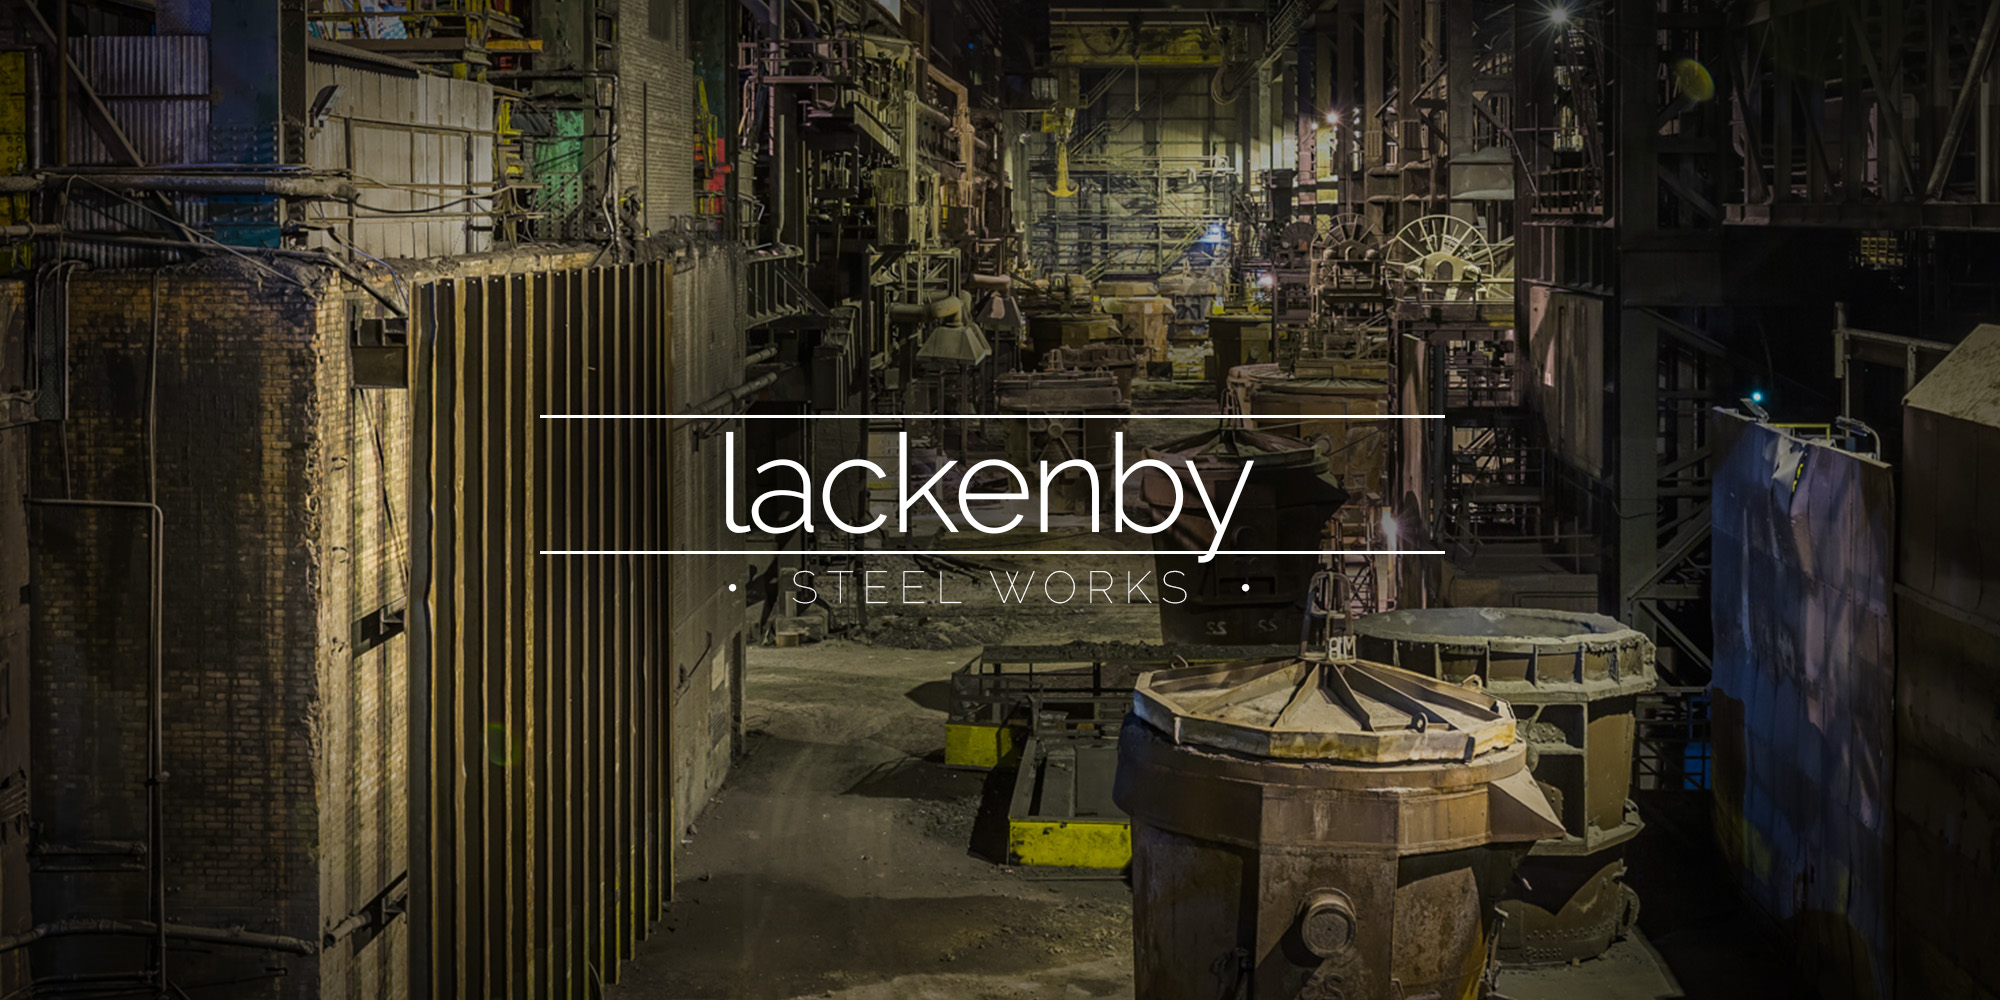 Teesside Lackenby Steelworks at Redcar